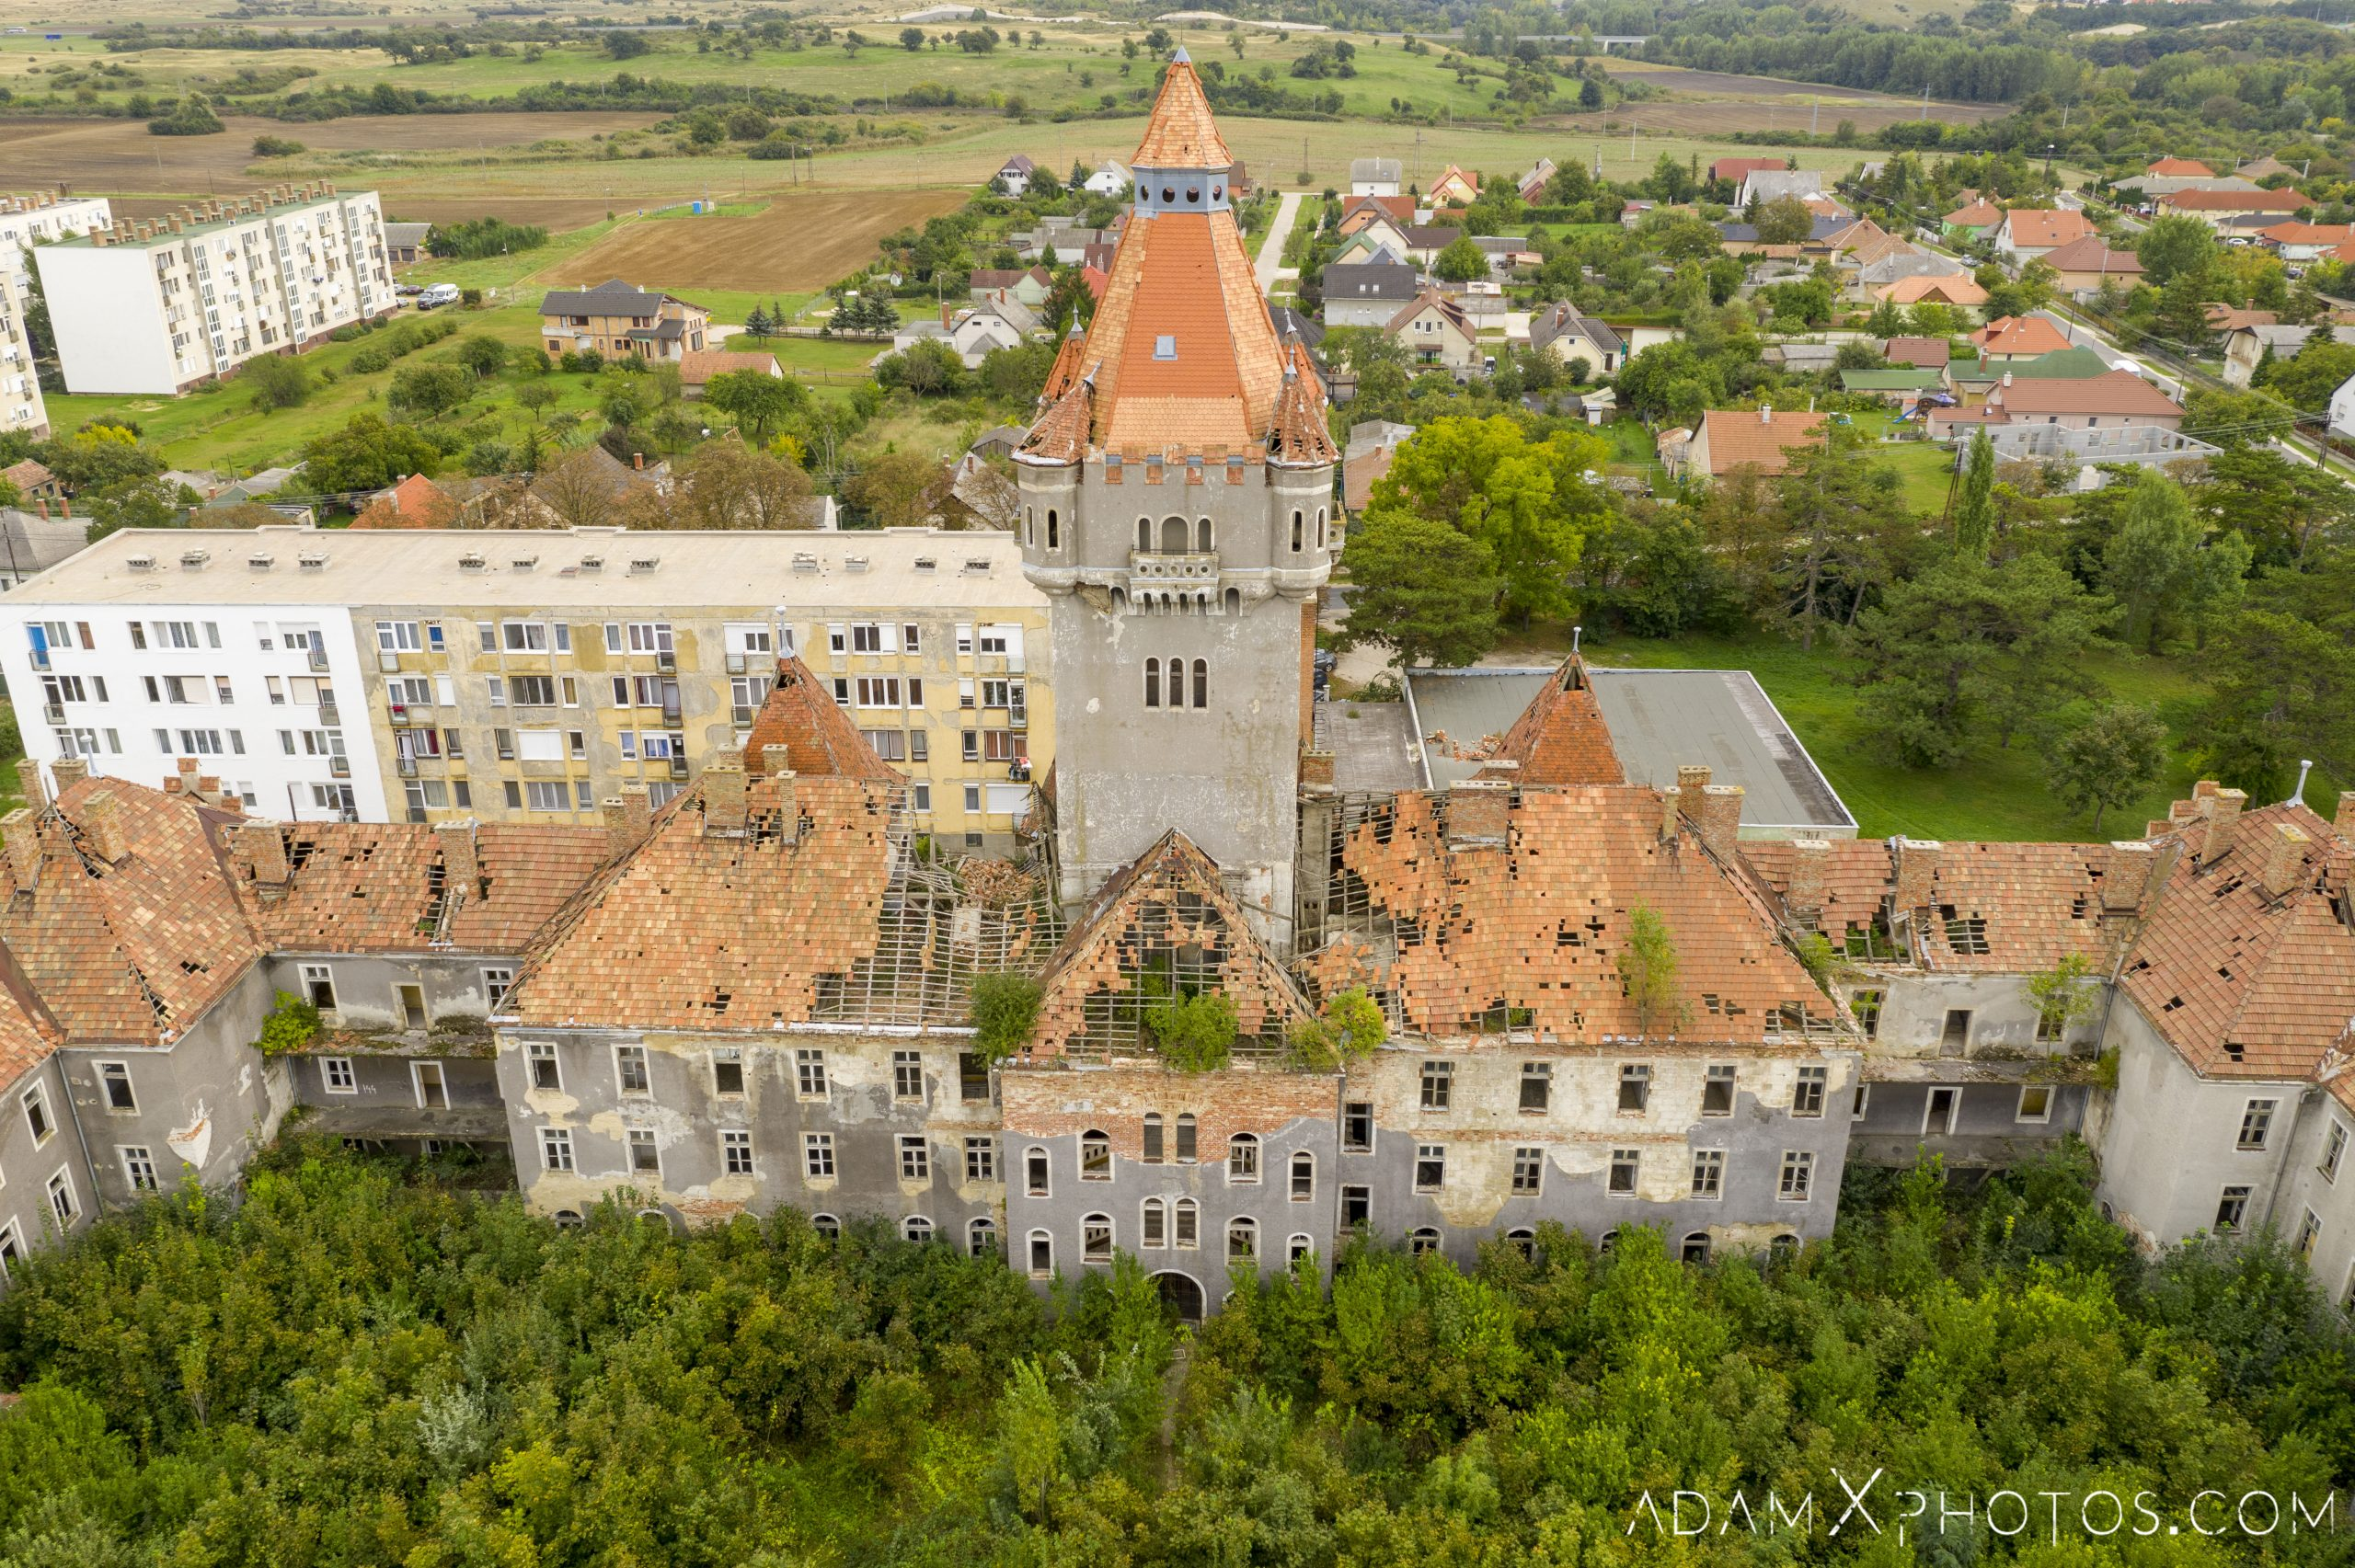 Tower Hajmaskér Barracks drone aerial from above hungary Adam X Urbex Urban Exploration Access 2018 Abandoned decay ruins lost forgotten derelict location creepy haunting eerie